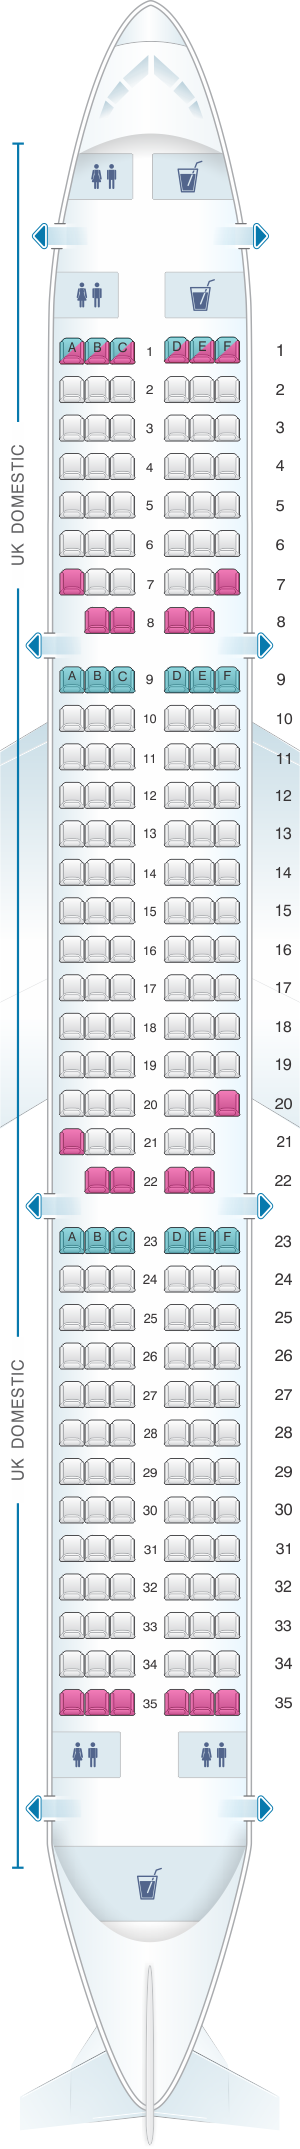 Seat Map British Airways Airbus A321 Domestic Layout SeatMaestro - Us Airways A321 Seat Map